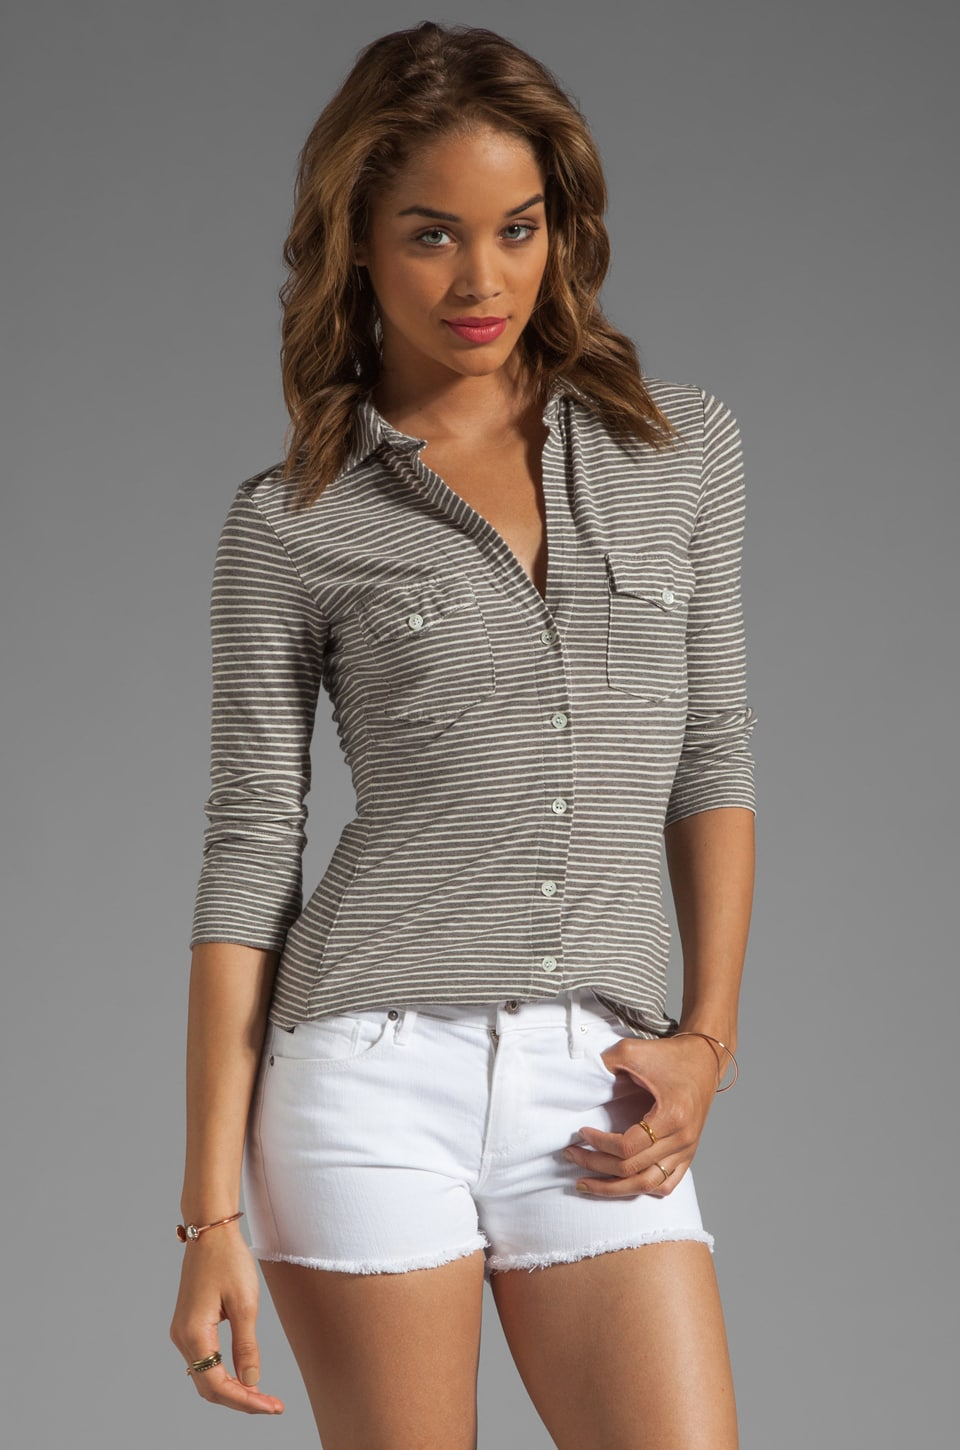 James Perse Side Panel Stripe Jersey Shirt in Heather Grey/White